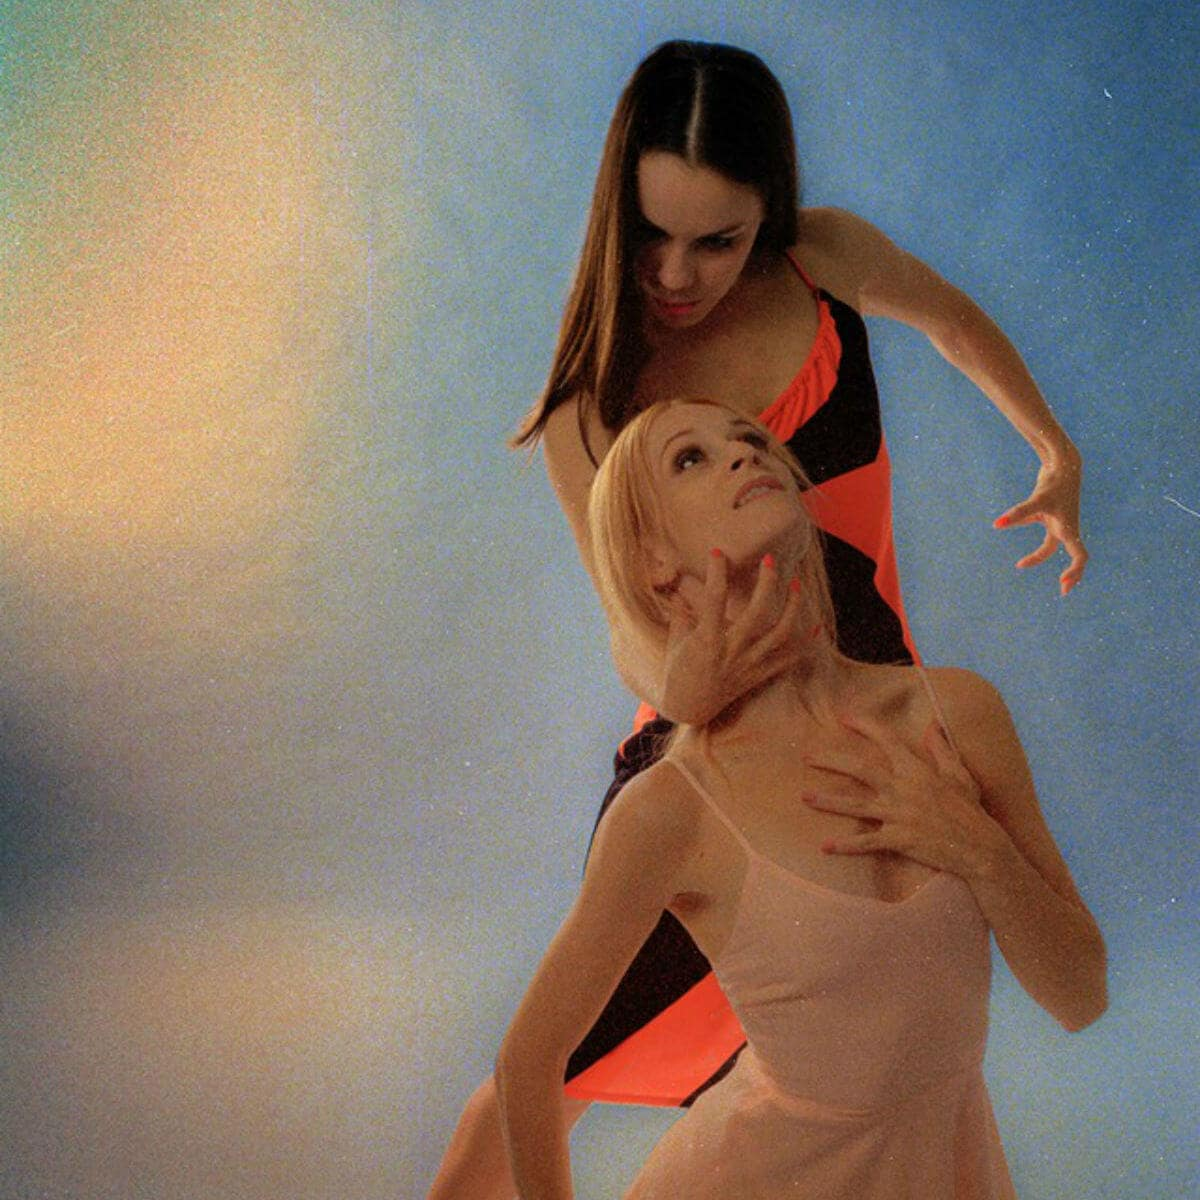 Dallas Neo-Classical Ballet presents Suspiria